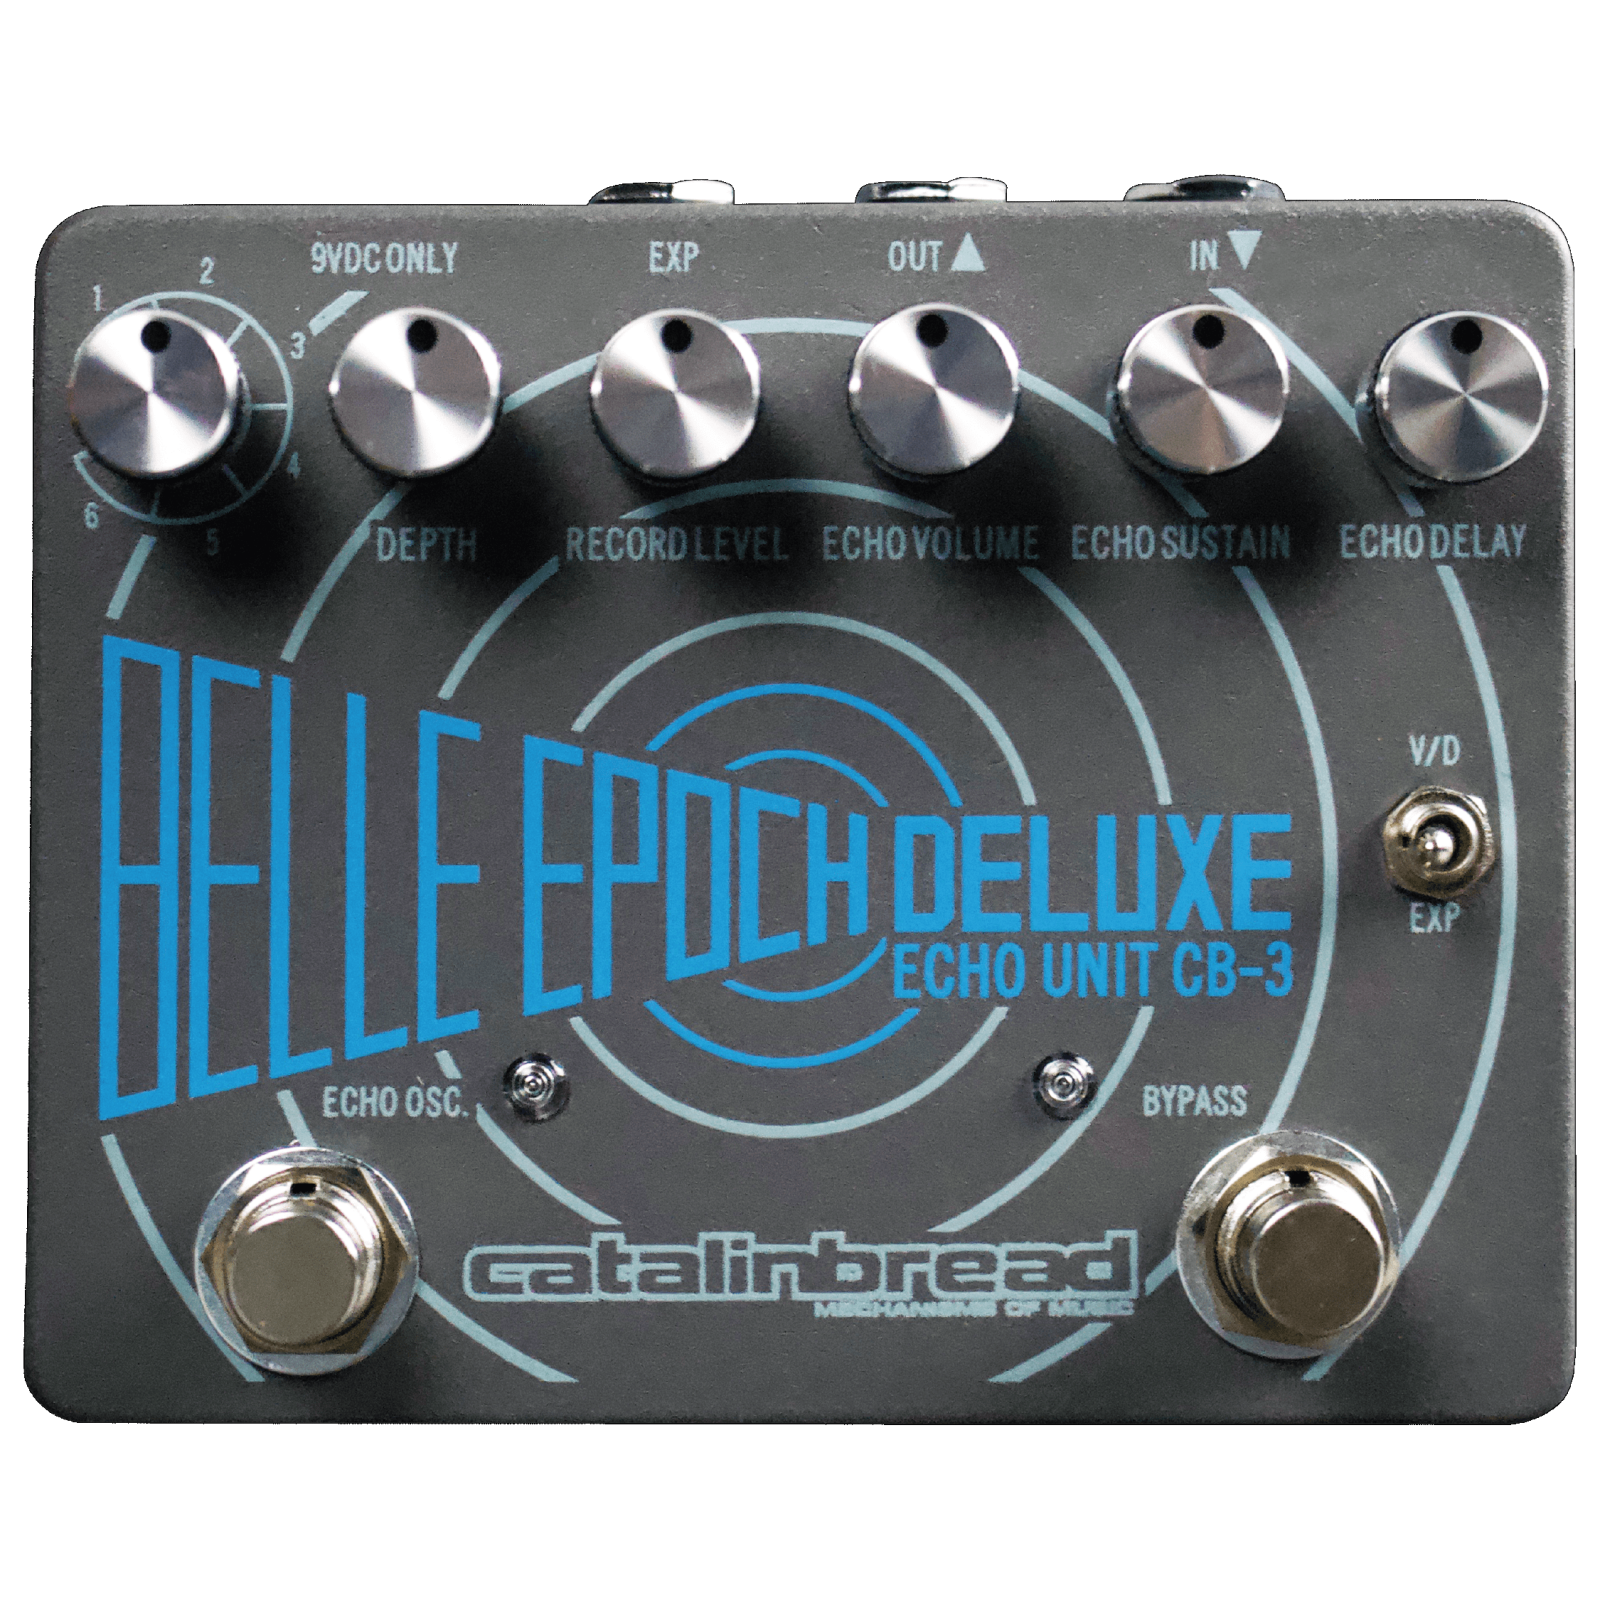 Catalinbread BELLE EPOCH DELUXE (with expression capability)